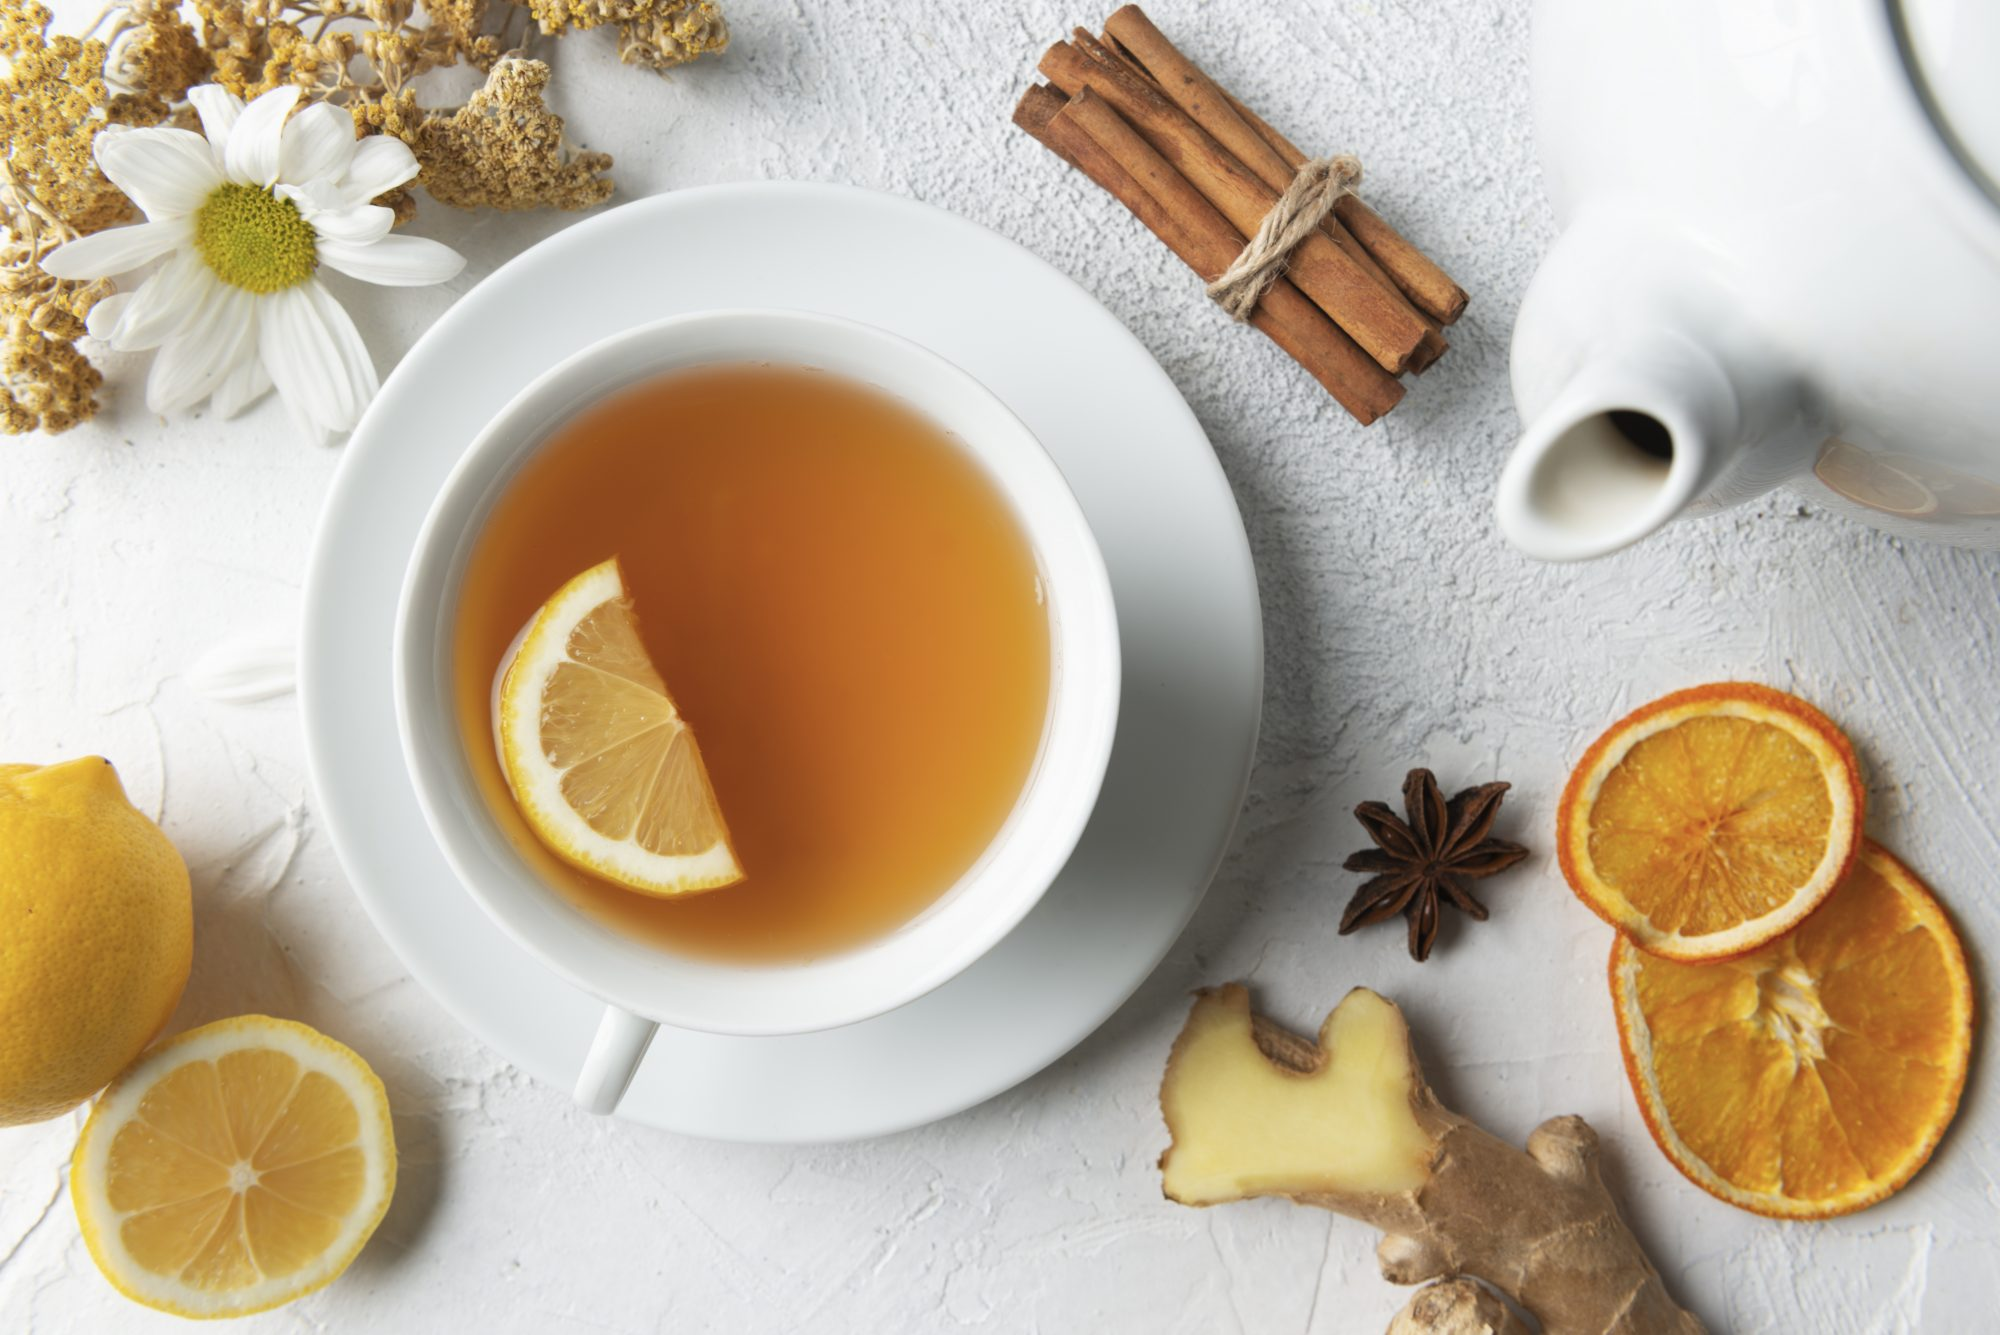 relaxing foods: cup of tea with lemon